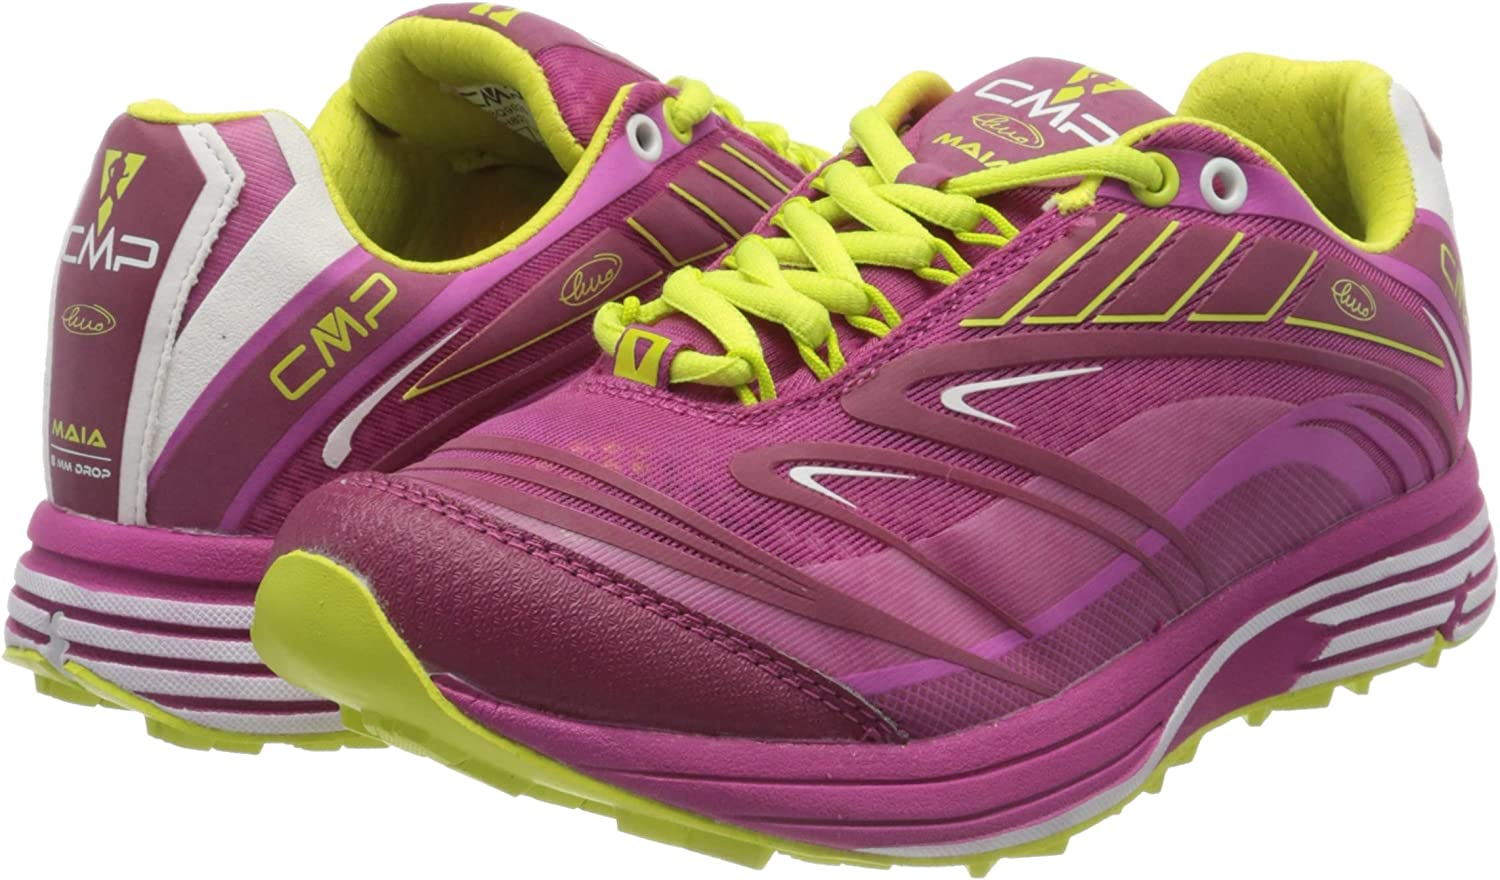 F.lli Campagnolo Womens Trail Running Shoes 6 CMP Pink Geraneo H820